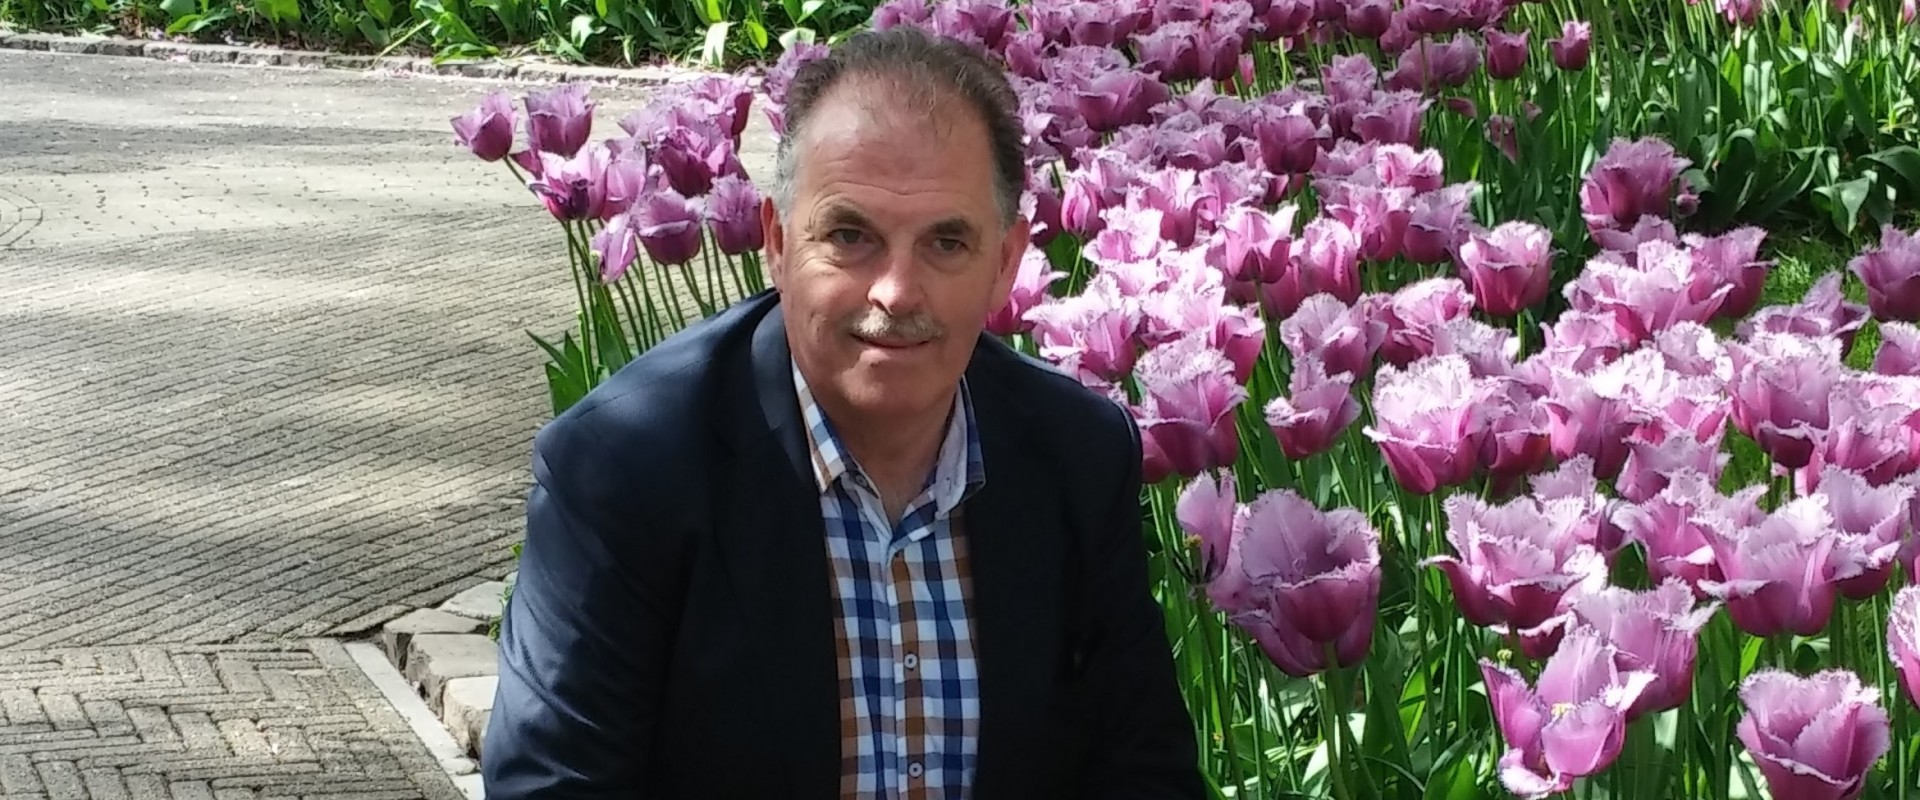 Founder of Flower Tours Holland | Peter Boers